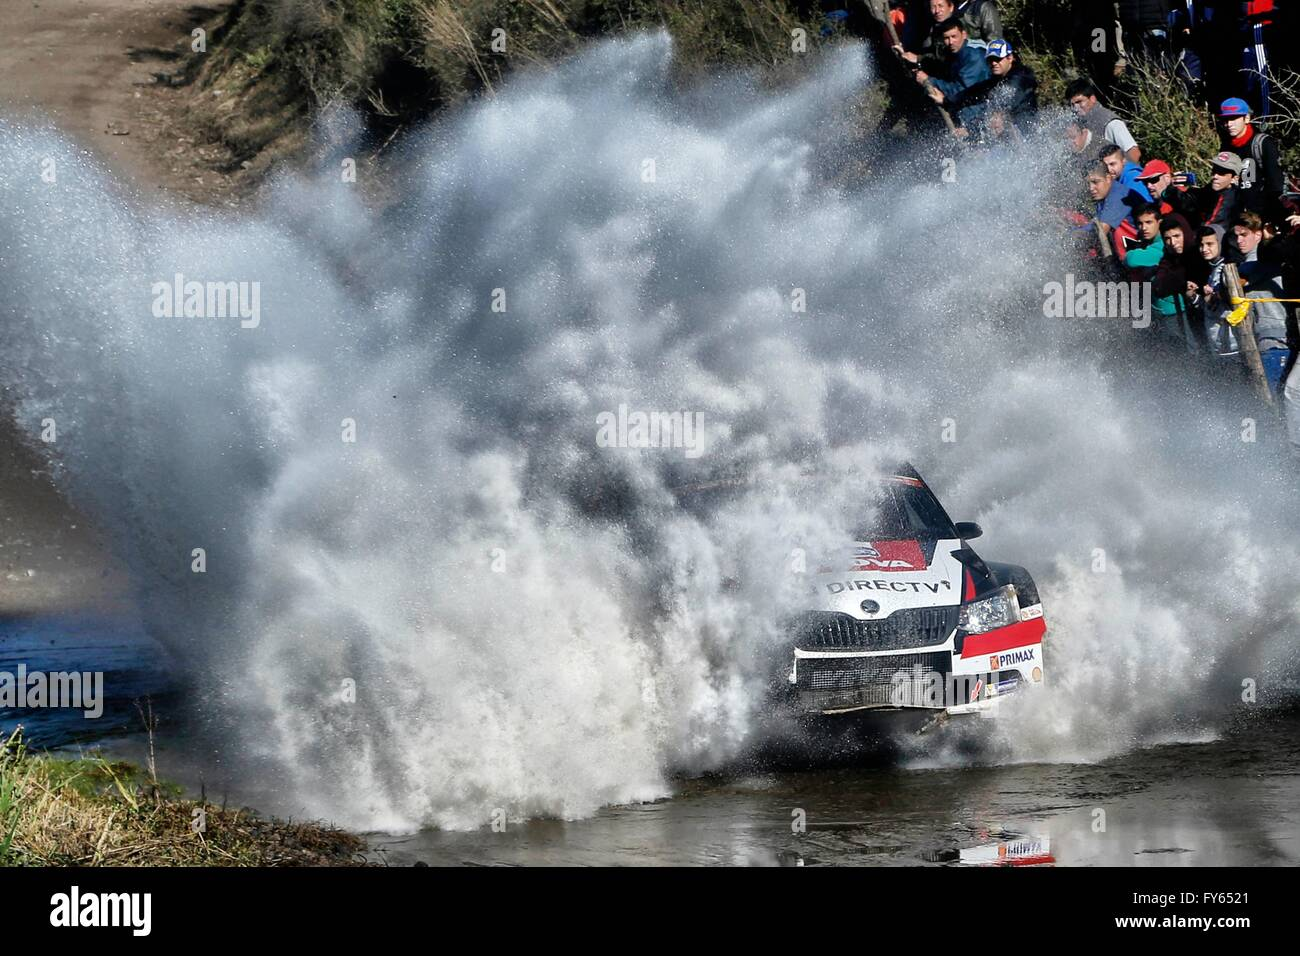 L'Argentine. 22 avr, 2016. Motorsport WRC WRC Rally de l'Argentine. FUCHS : Action Crédit Plus Photo Stock